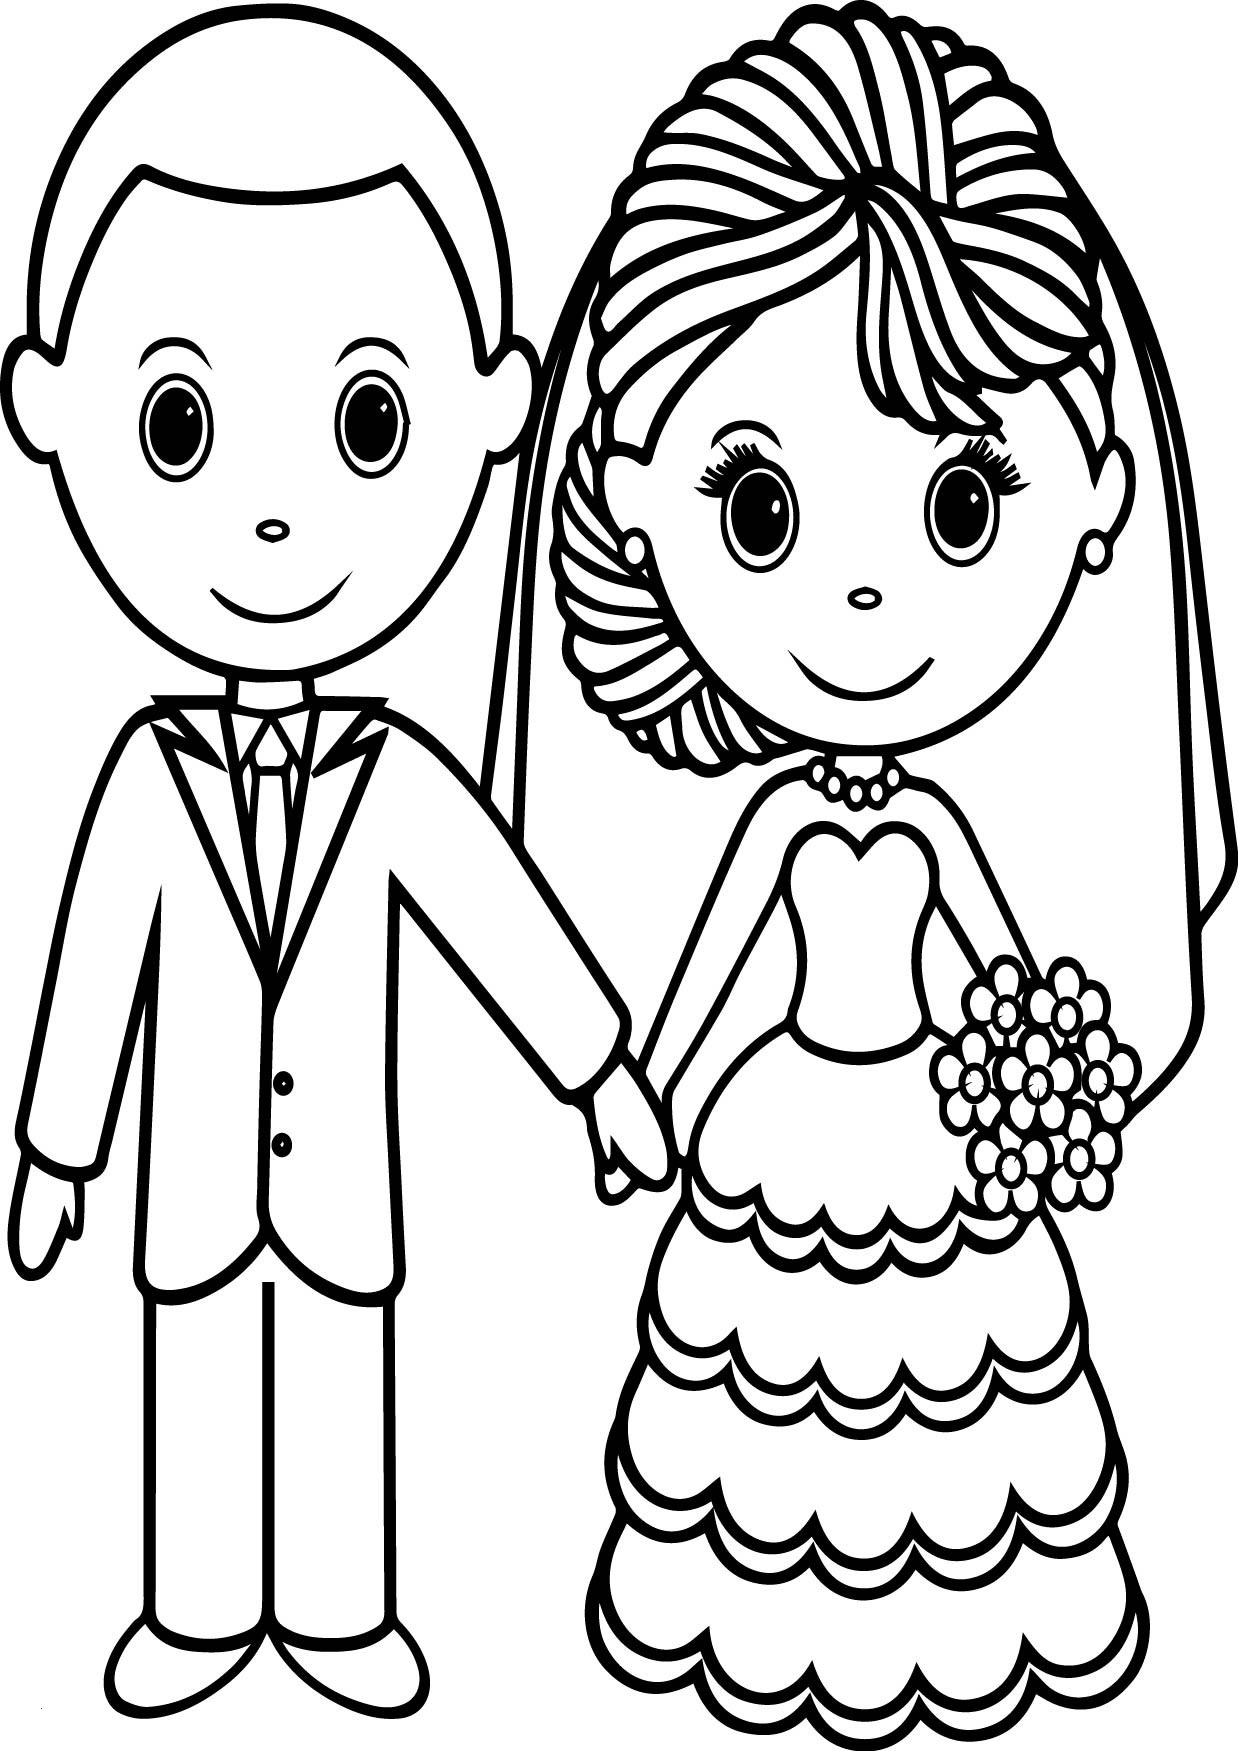 Bride and Groom Coloring Pages  Printable 19i - Free Download